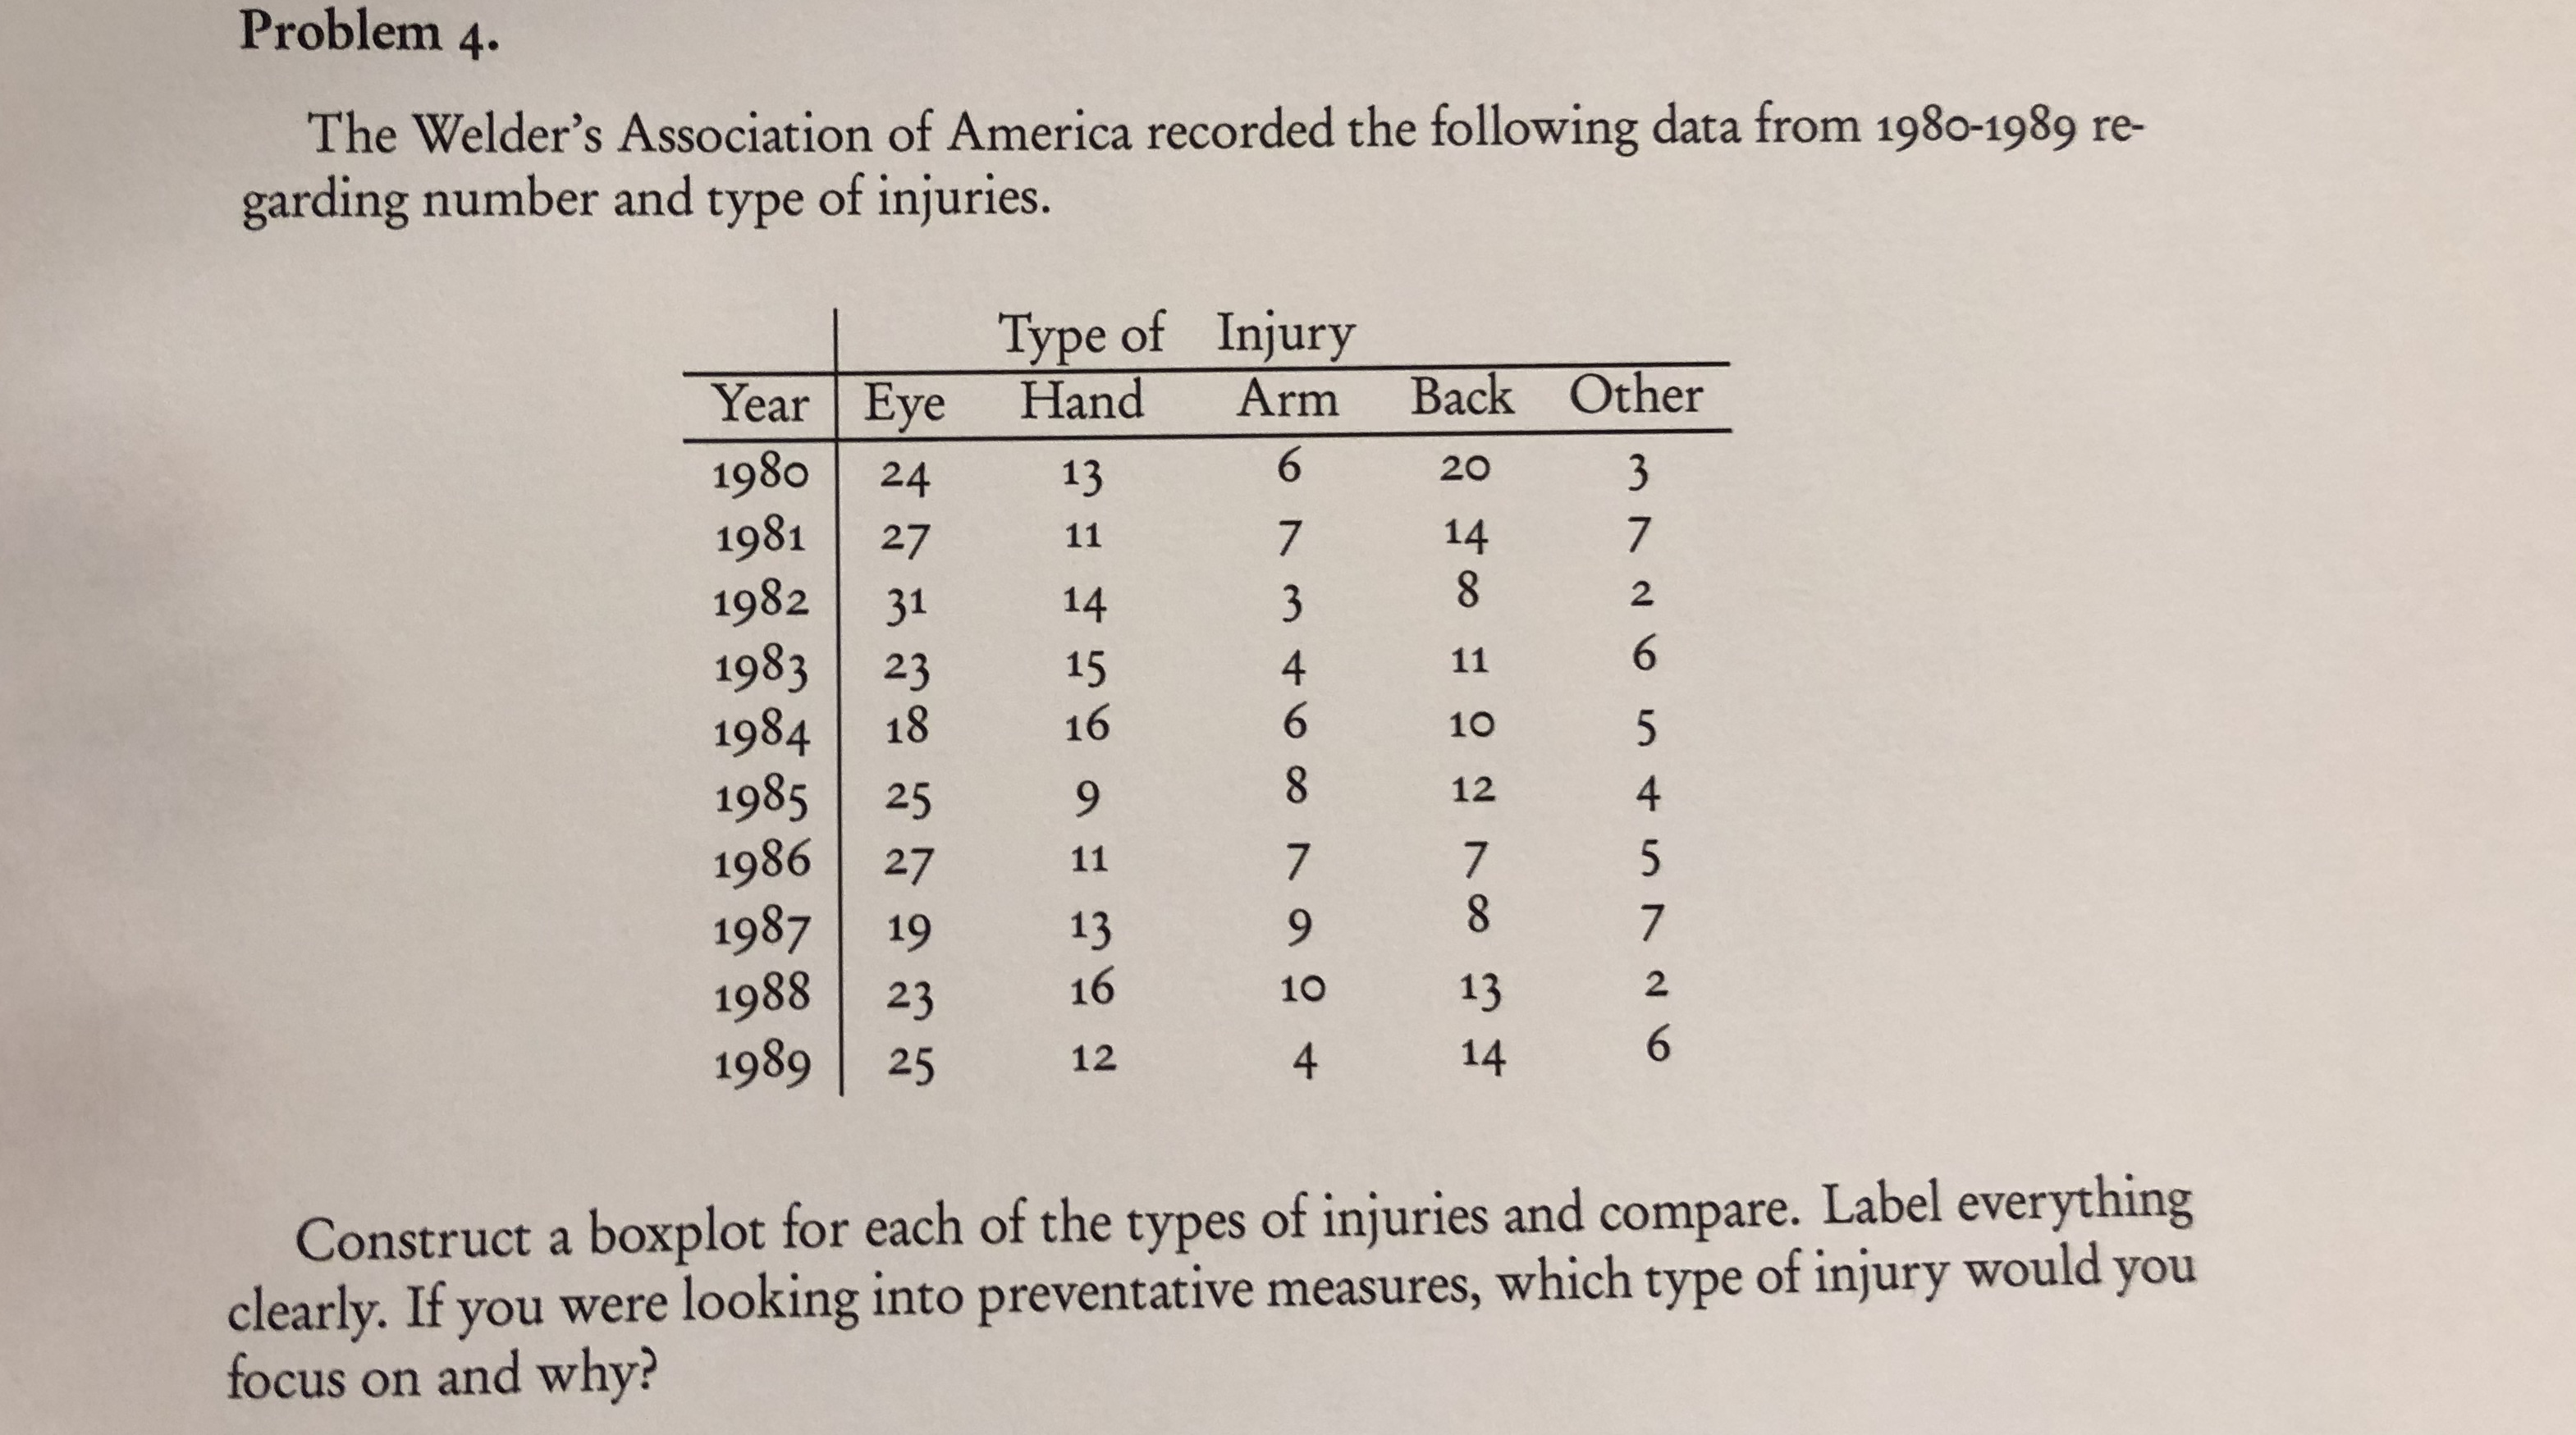 Problem 4. The Welder's Association of America recorded the following dat a from 1980-1989 re- garding number and type of injuries. Type of Injury Back Other Year Eye Hand Arm 1980 1981 1982 20 13 24 14 7 27 11 2 3 14 31 6 1983 11 4 6 15 23 18 16 1984 10 8 1985 1986 27 1987 1988 1989 12 4 25 7 8 7 11 13 19 16 2 13 10 23 6 14 4 12 25 Construct a boxplot for each of the types of injuries and compare. Label everything clearly. If you were looking into preventative measures, which type of injury would you focus on and why?